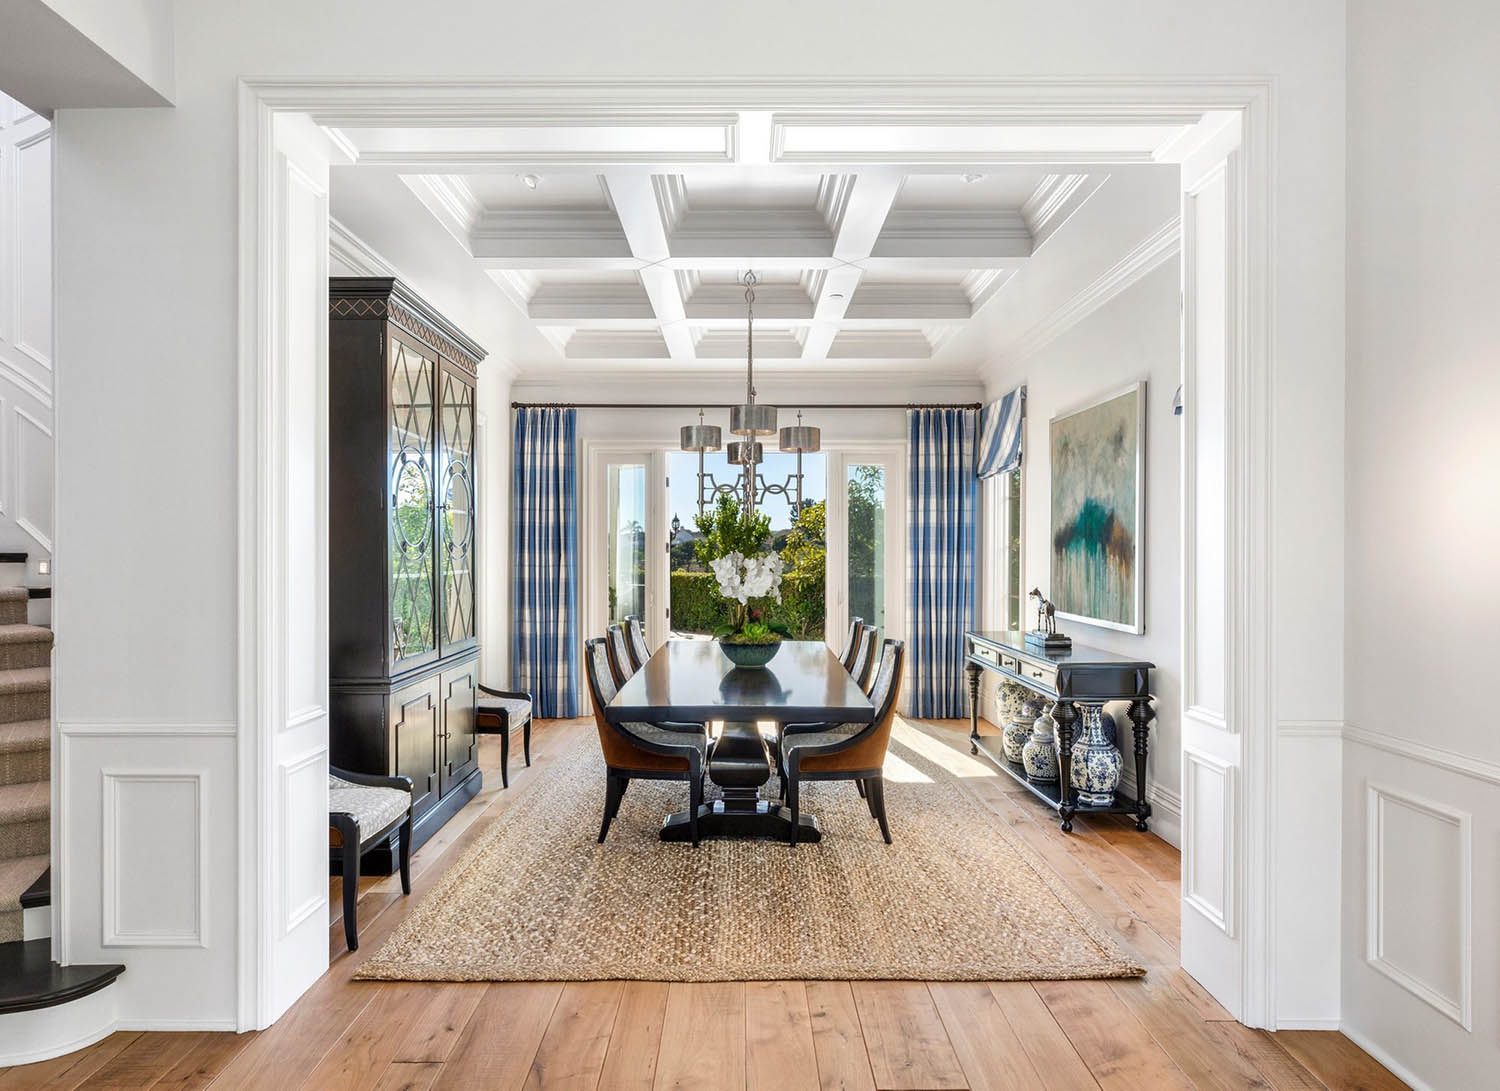 All white dining room design with coffered ceiling and soffits. Natural wide plank hardwood floors.